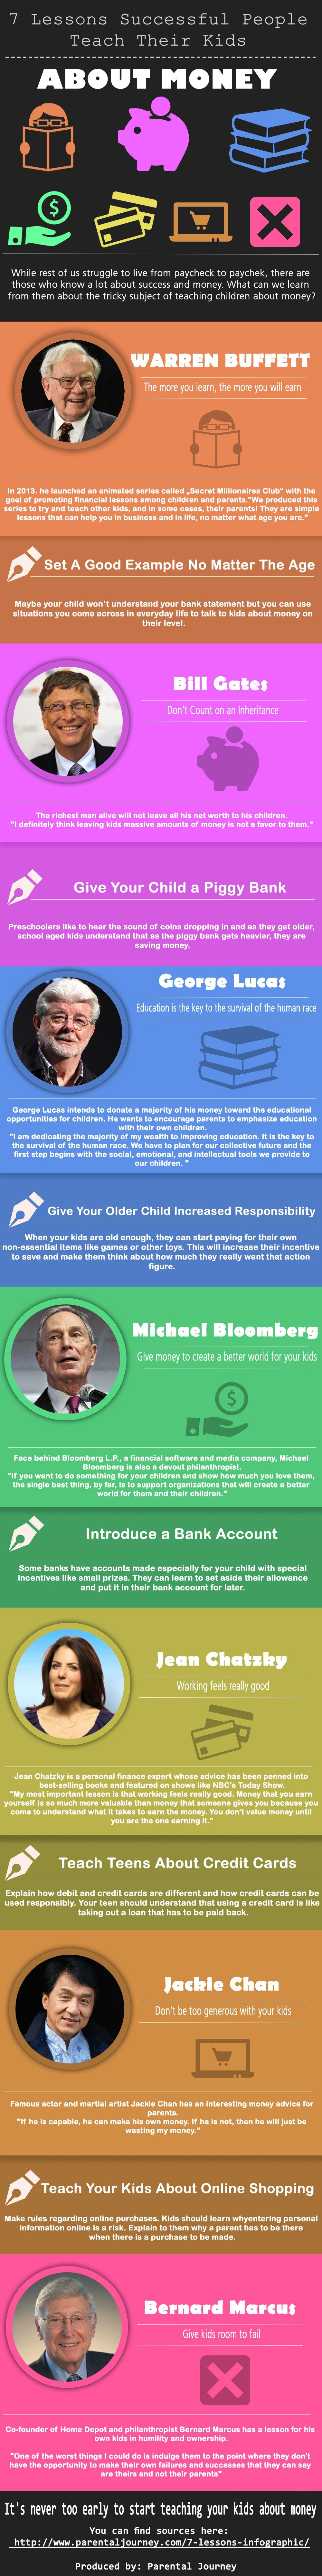 How Successful People Teach Their Kids About Money #Infographic